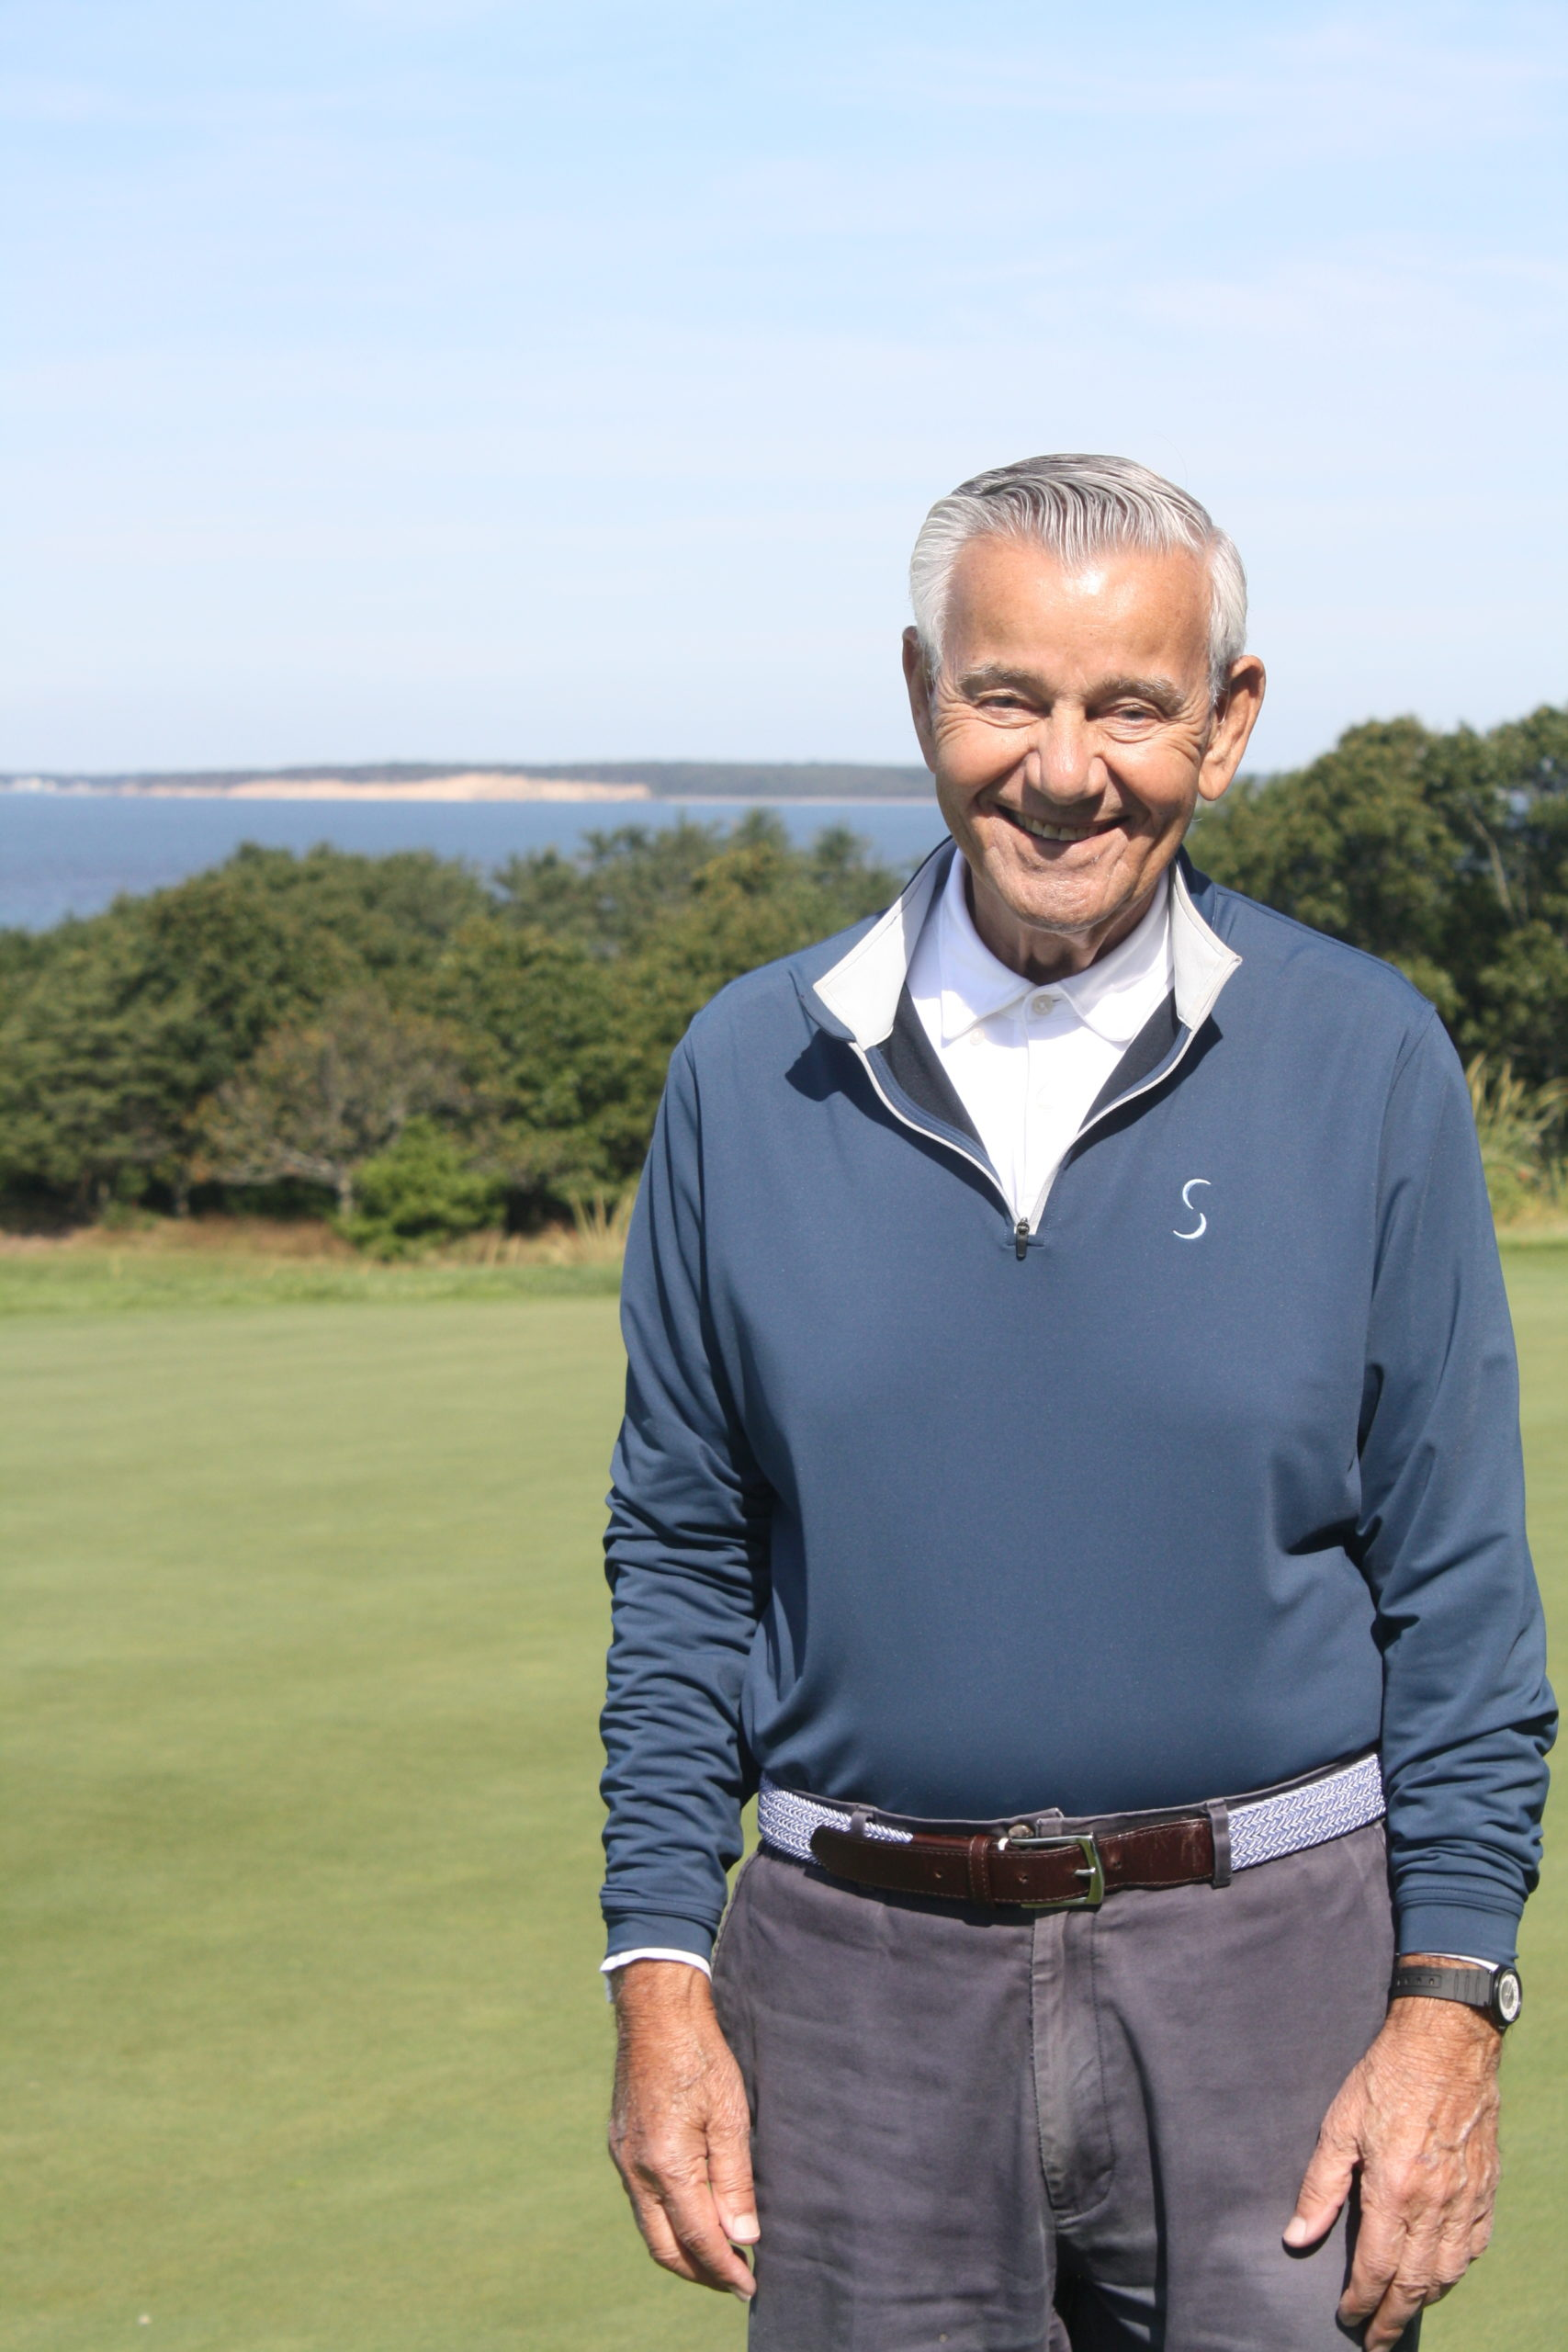 Sebonack Golf Club owner Michael Pascucci was chosen as  the Grand Marshal for the 77th annual Columbus Day Parade in New York City.